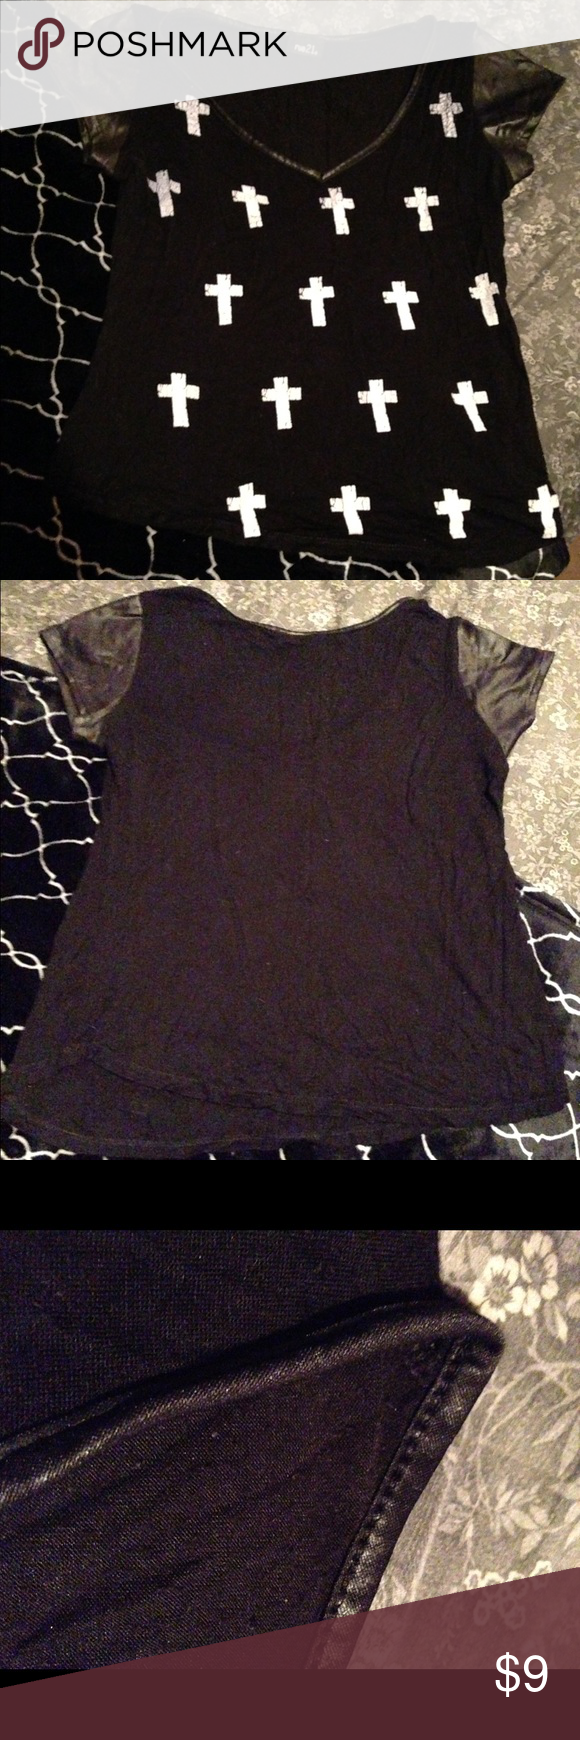 Pleather sleeves top Black top with pleather sleeves, white crosses on front. Rue 21 Tops